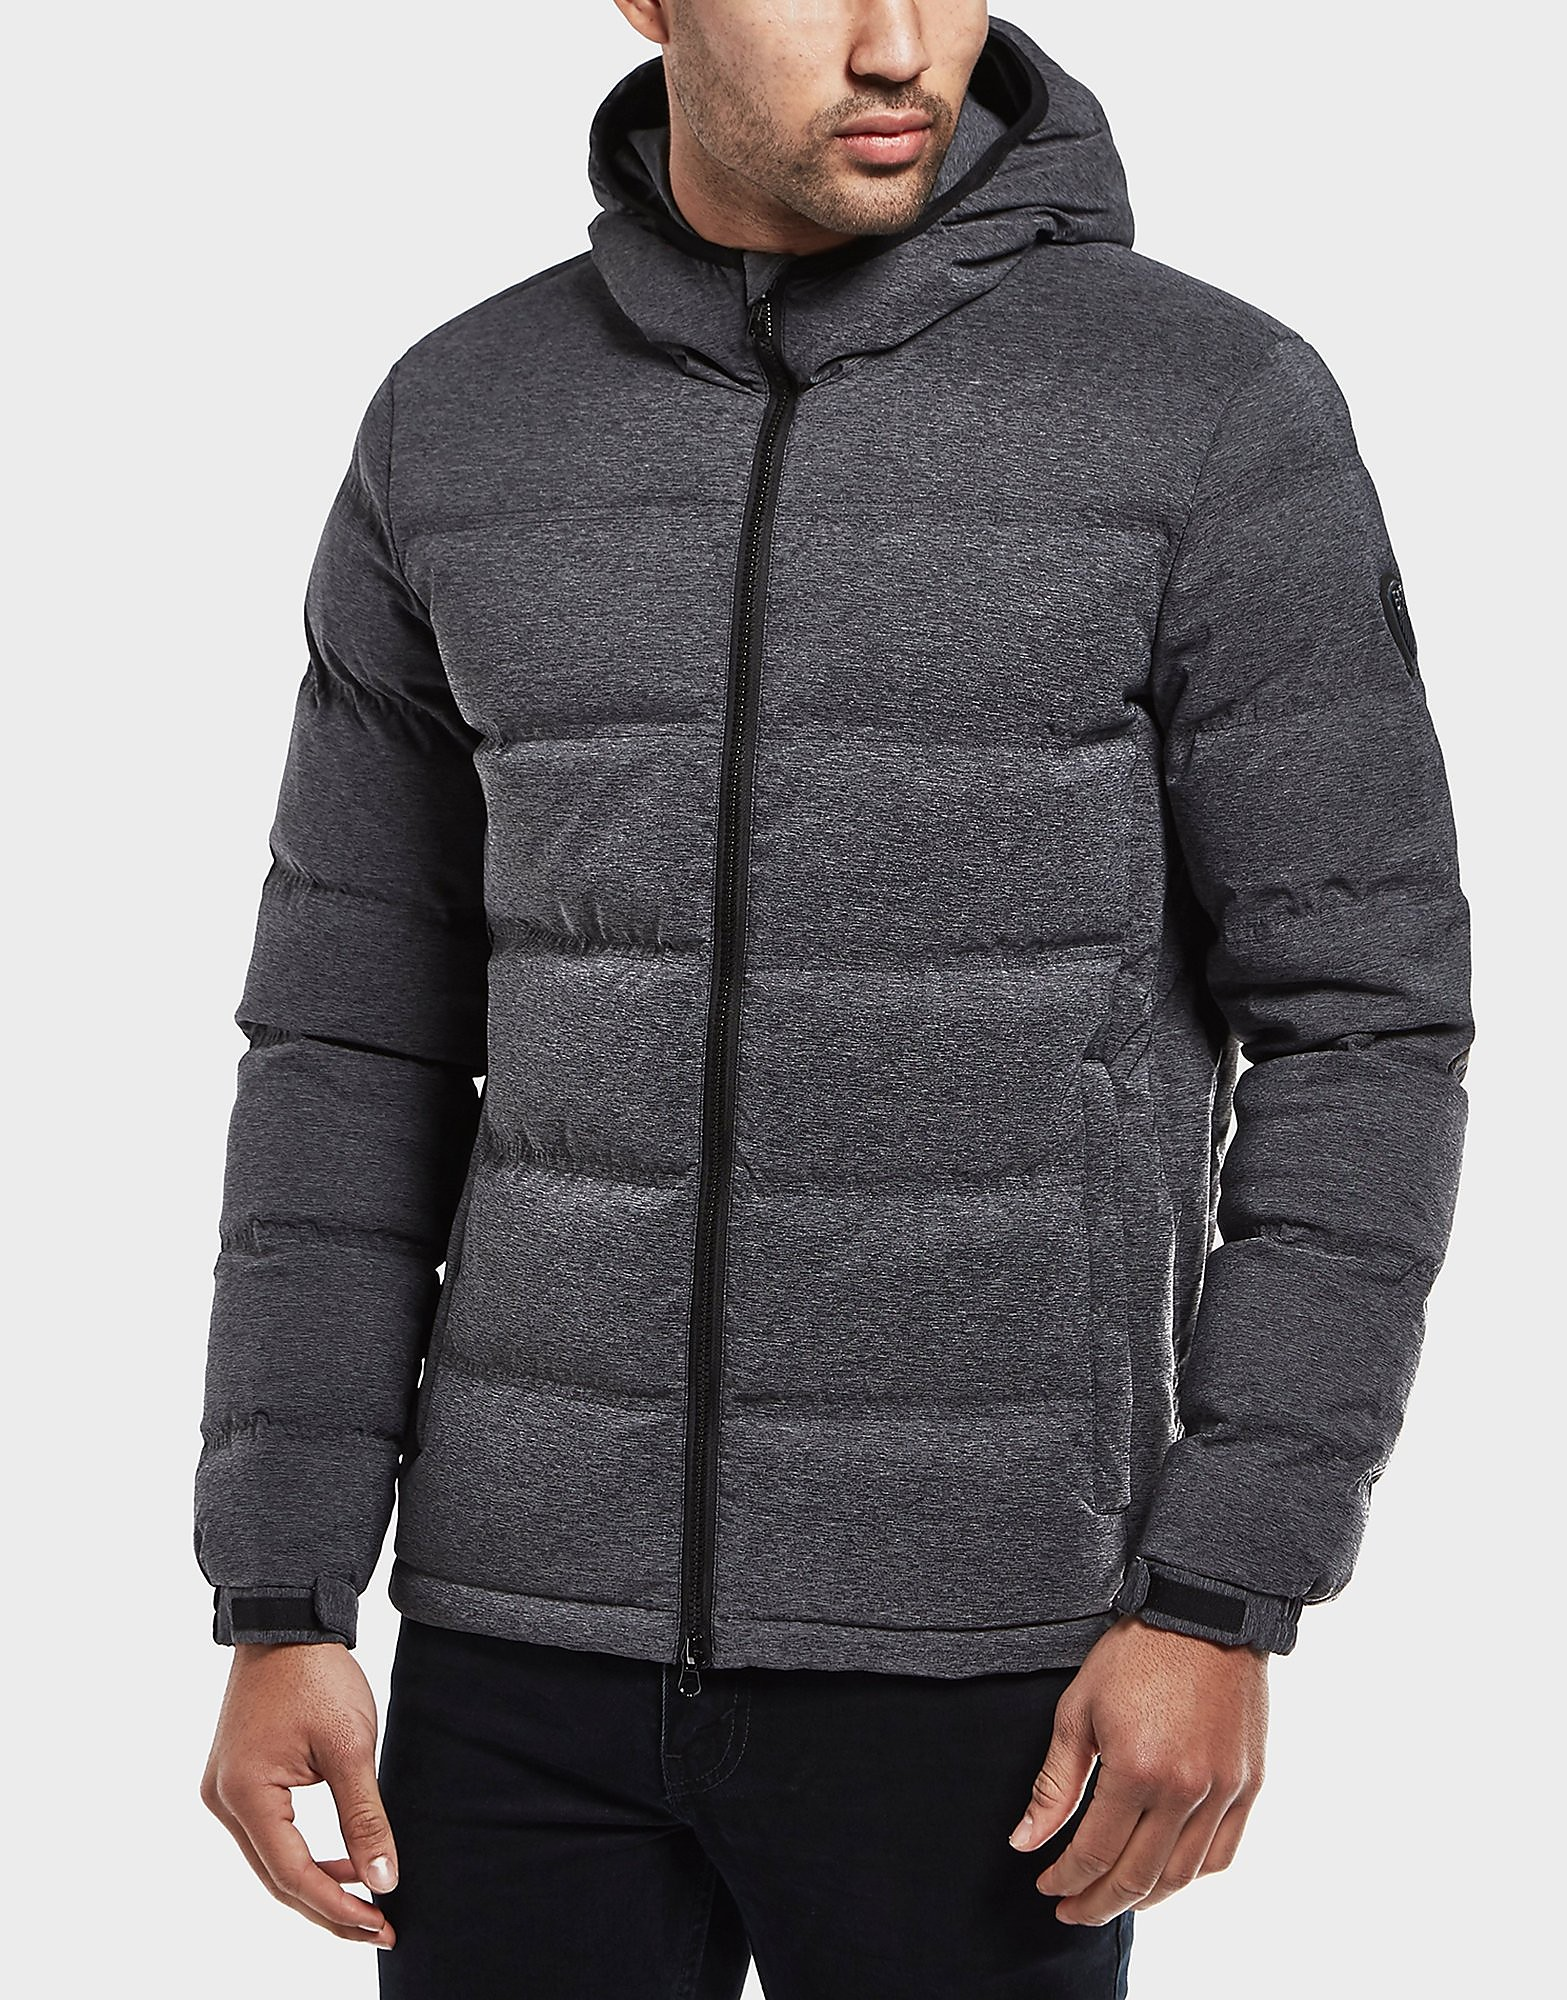 Emporio Armani EA7 Mountain Padded Jacket